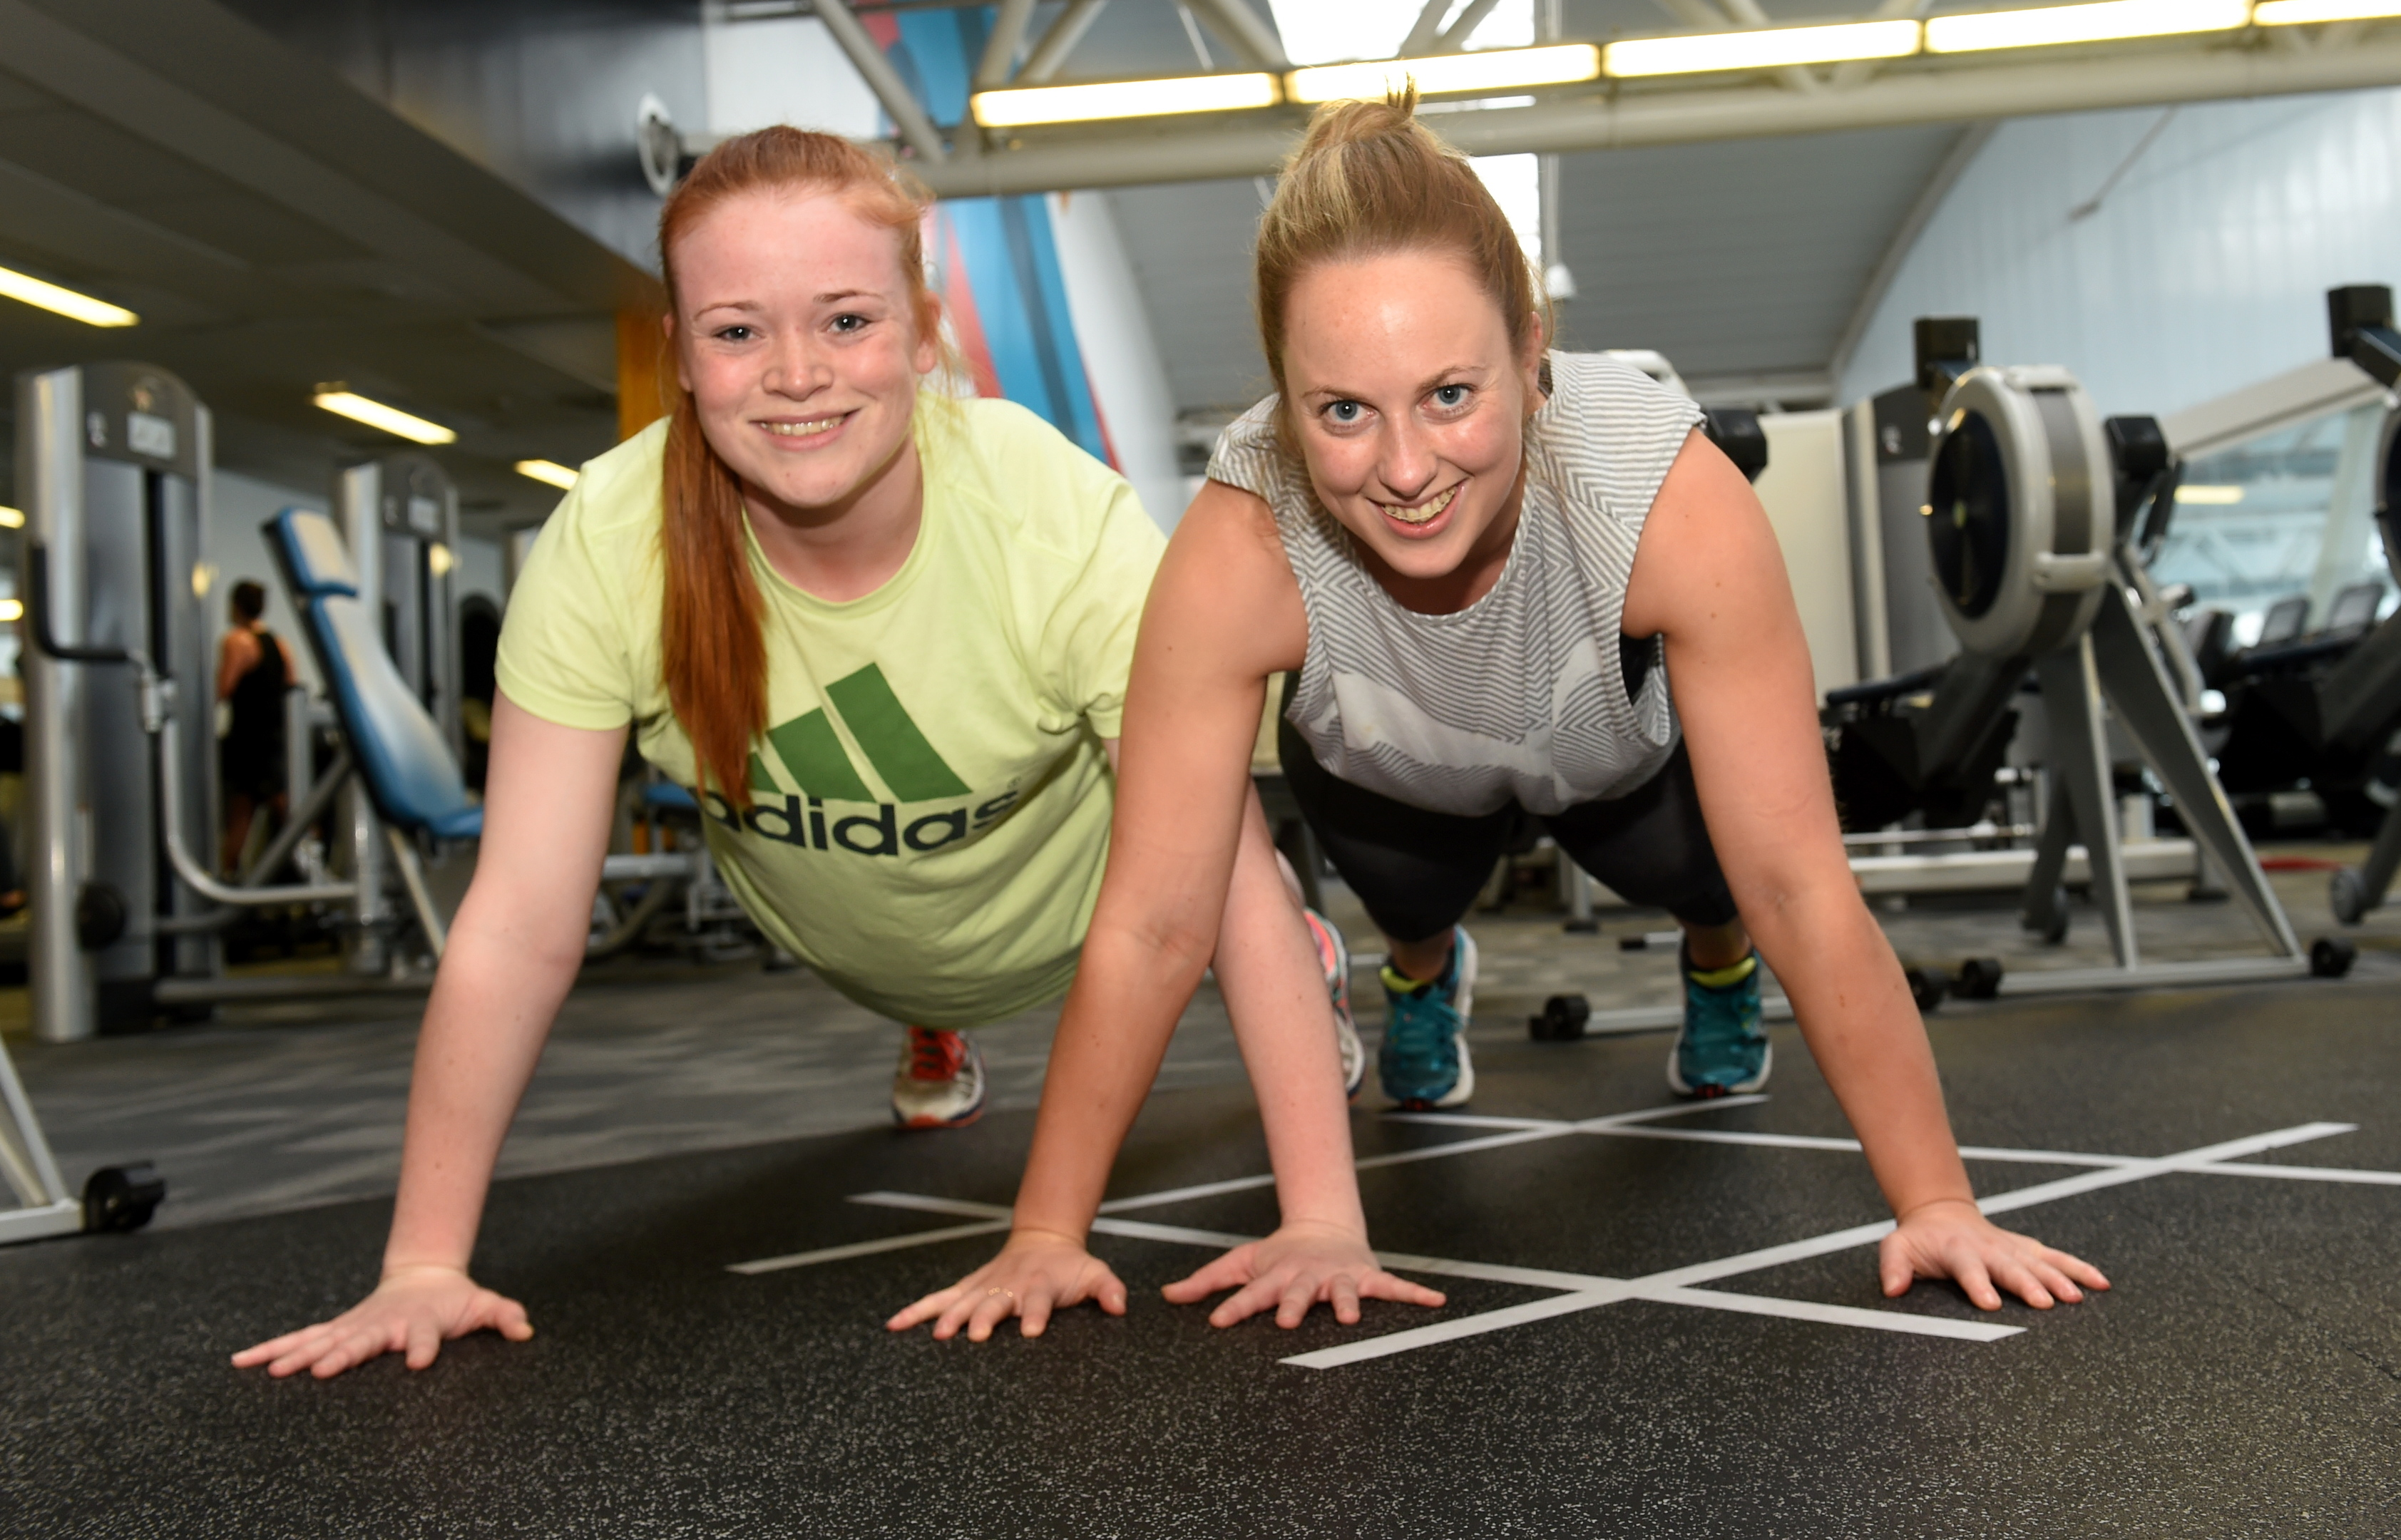 Victoria, left, and Becci benefit from being 'gym buddies'.